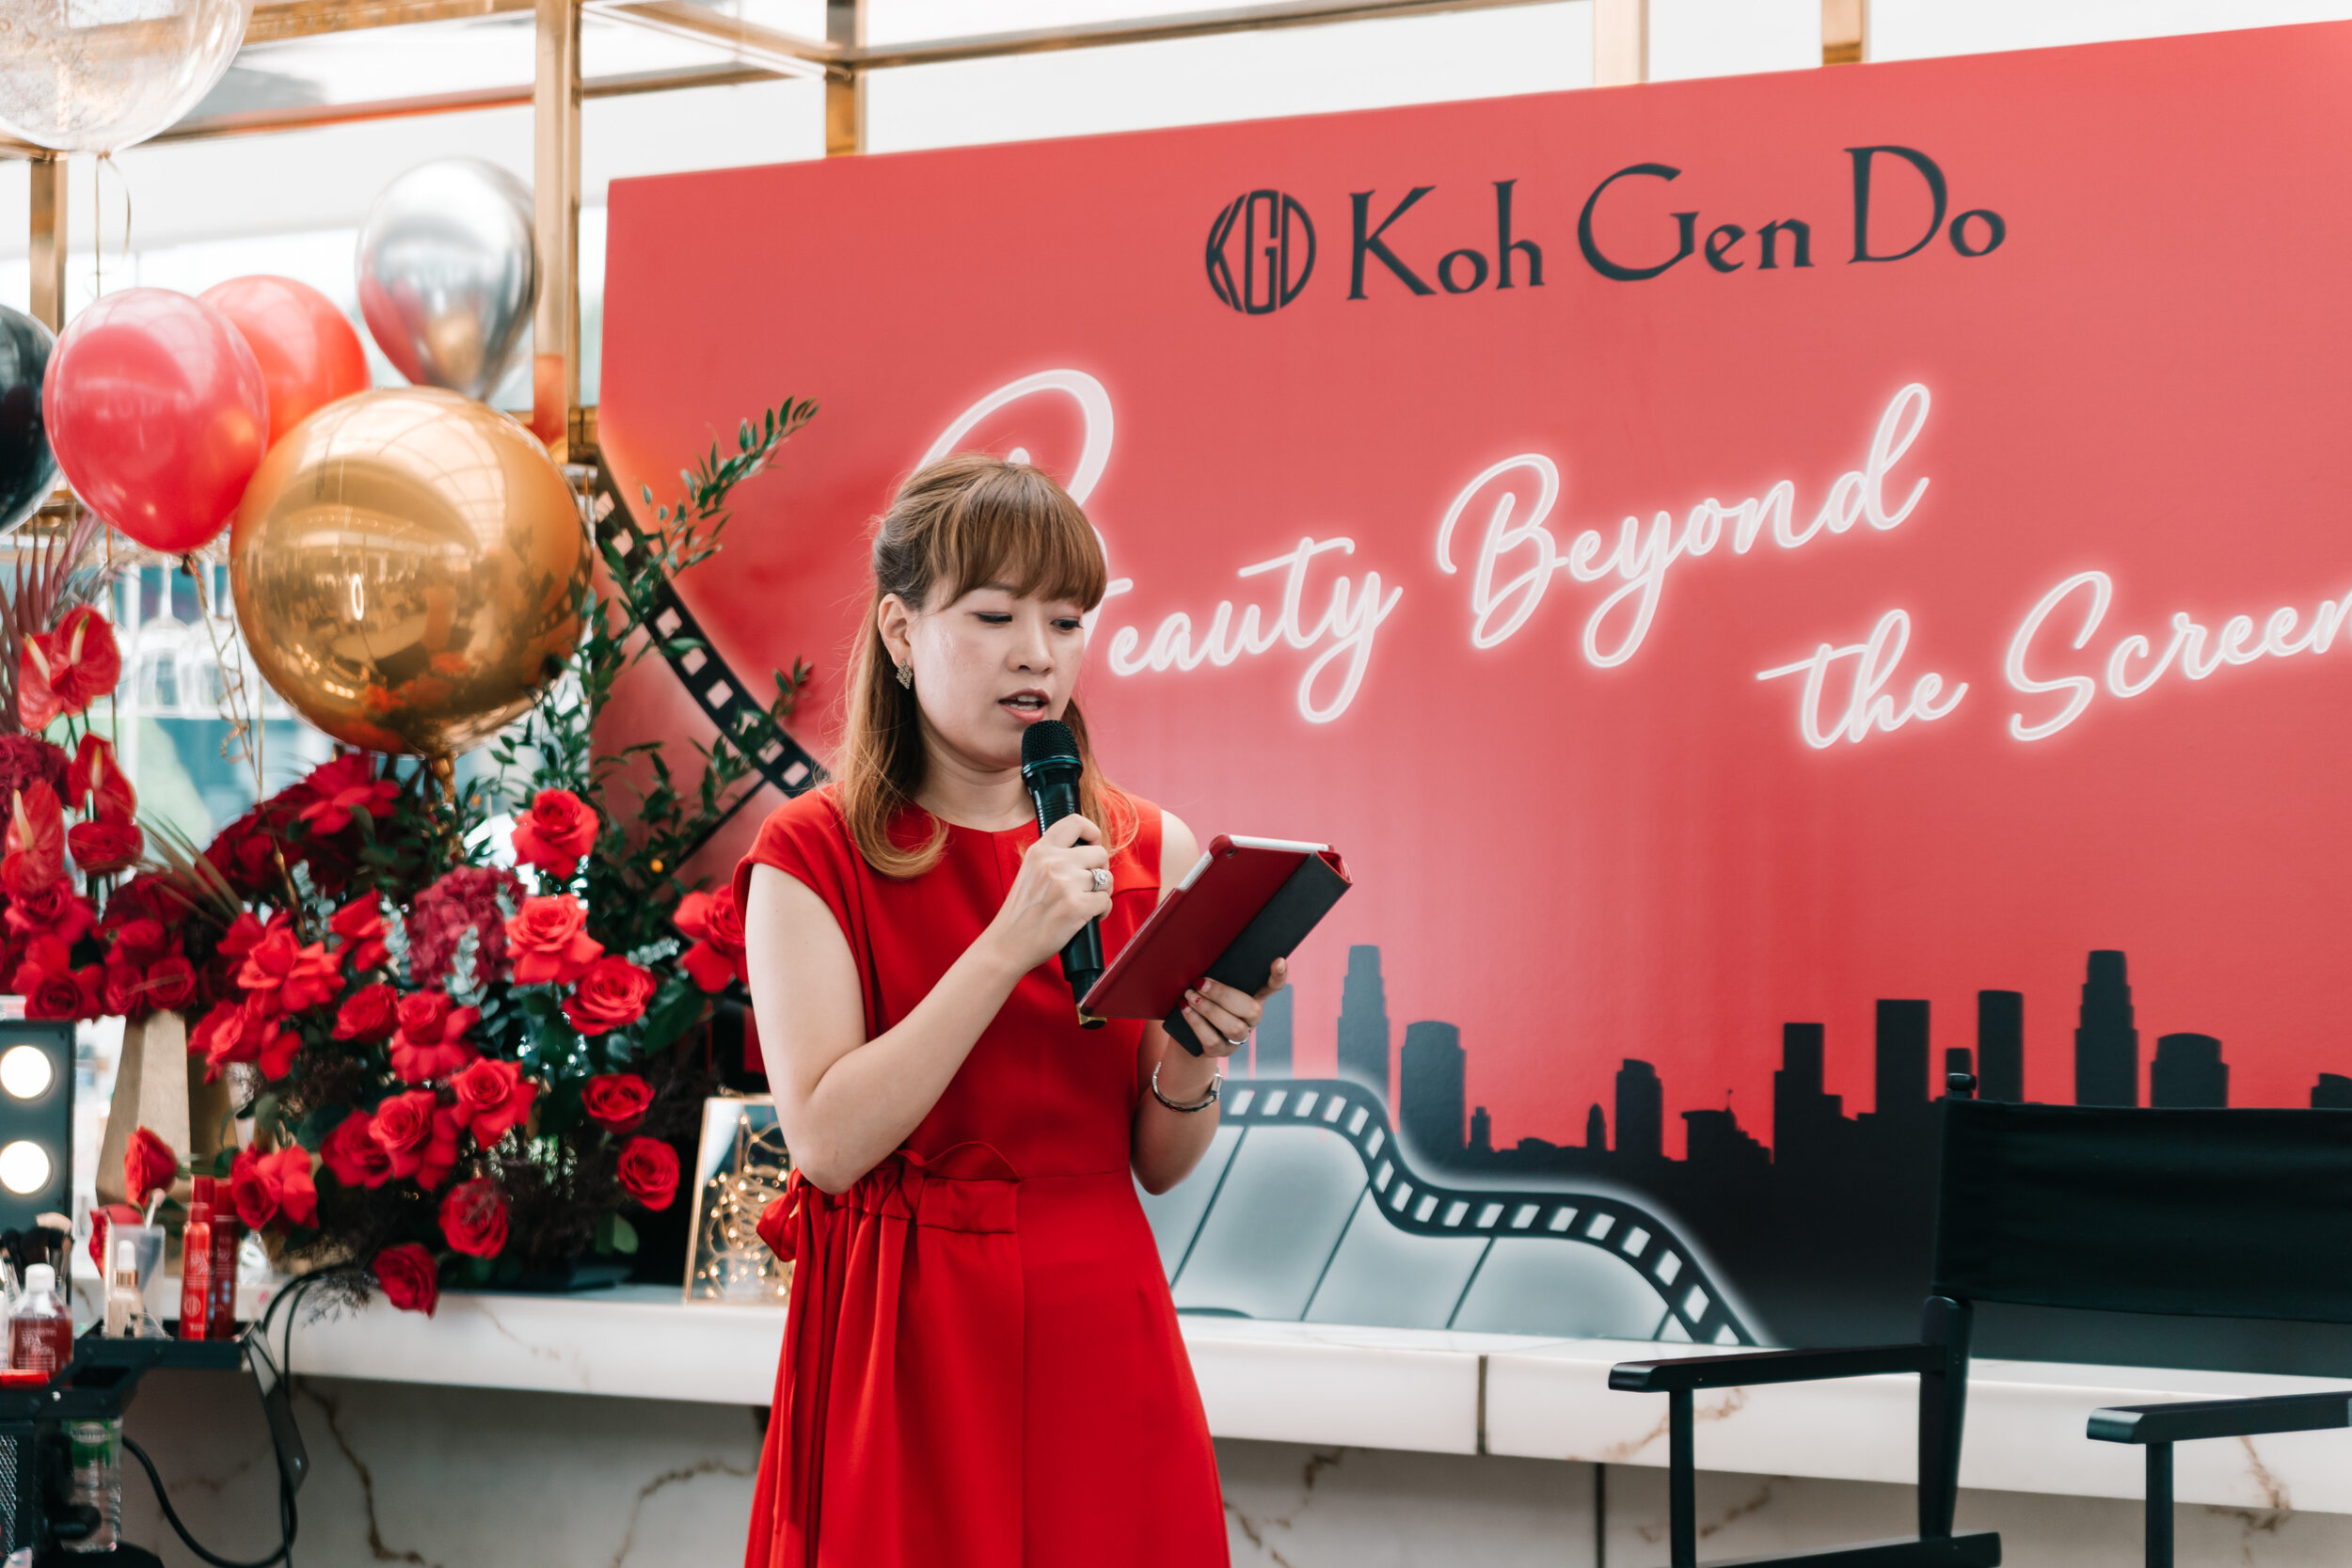 Ms Yunje Jang, General Manager of Overseas Business Department, Koh Gen Do   delivers a speech on the history of Koh Gen Do, a cosmetic line that has been credited in over 840 international films which emphasises restorative beauty.